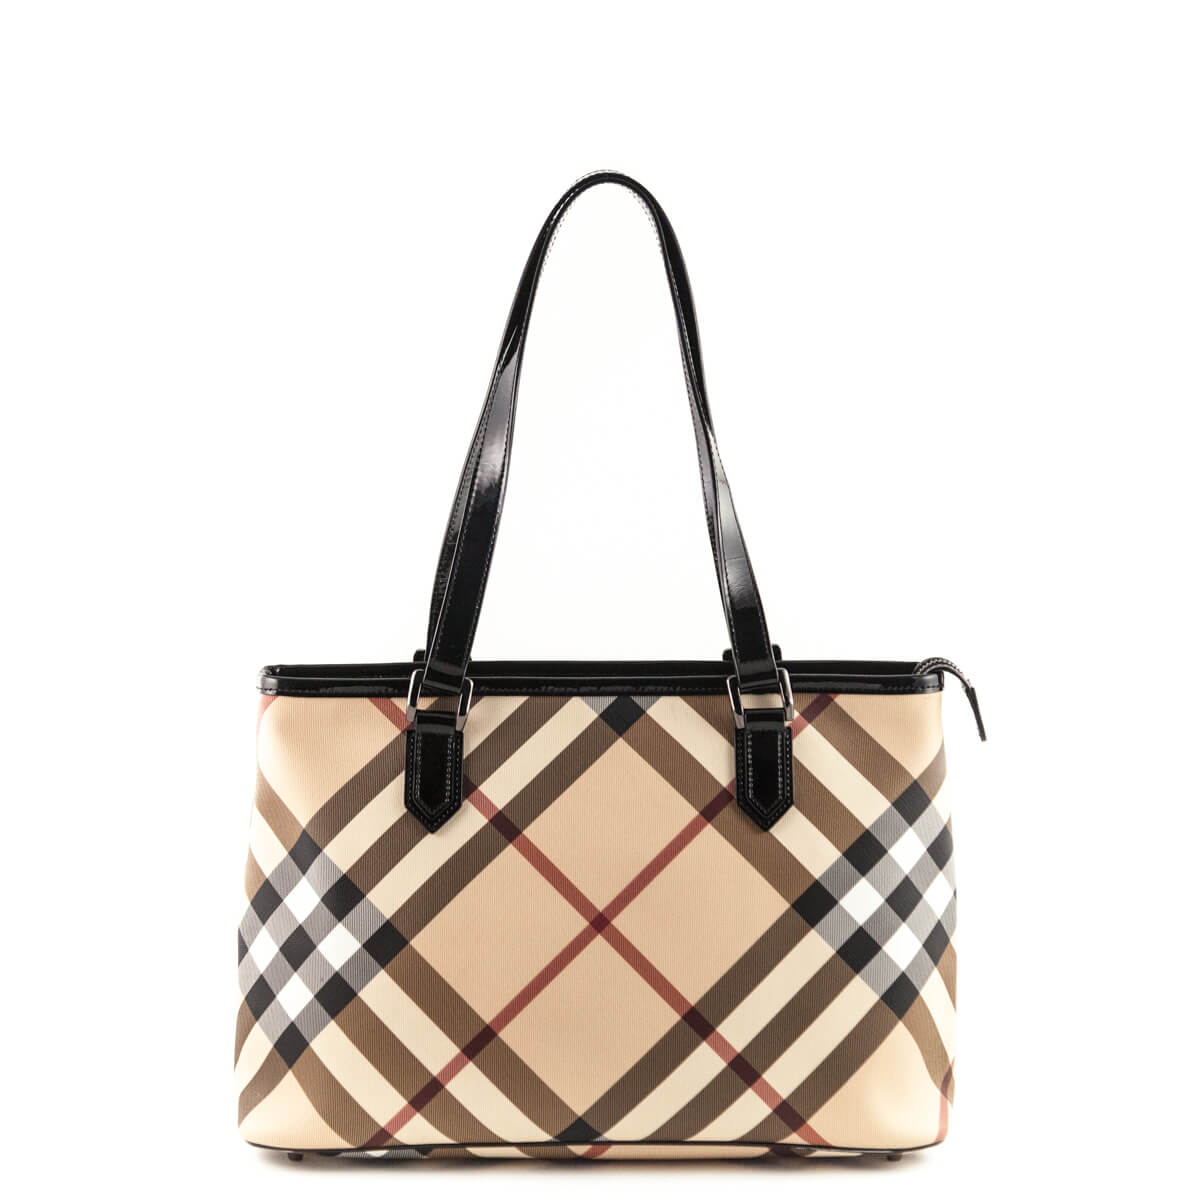 ca2f64a2eb4 Burberry Nova Check Tote Bag - LOVE that BAG - Preowned Authentic Designer  Handbags ...